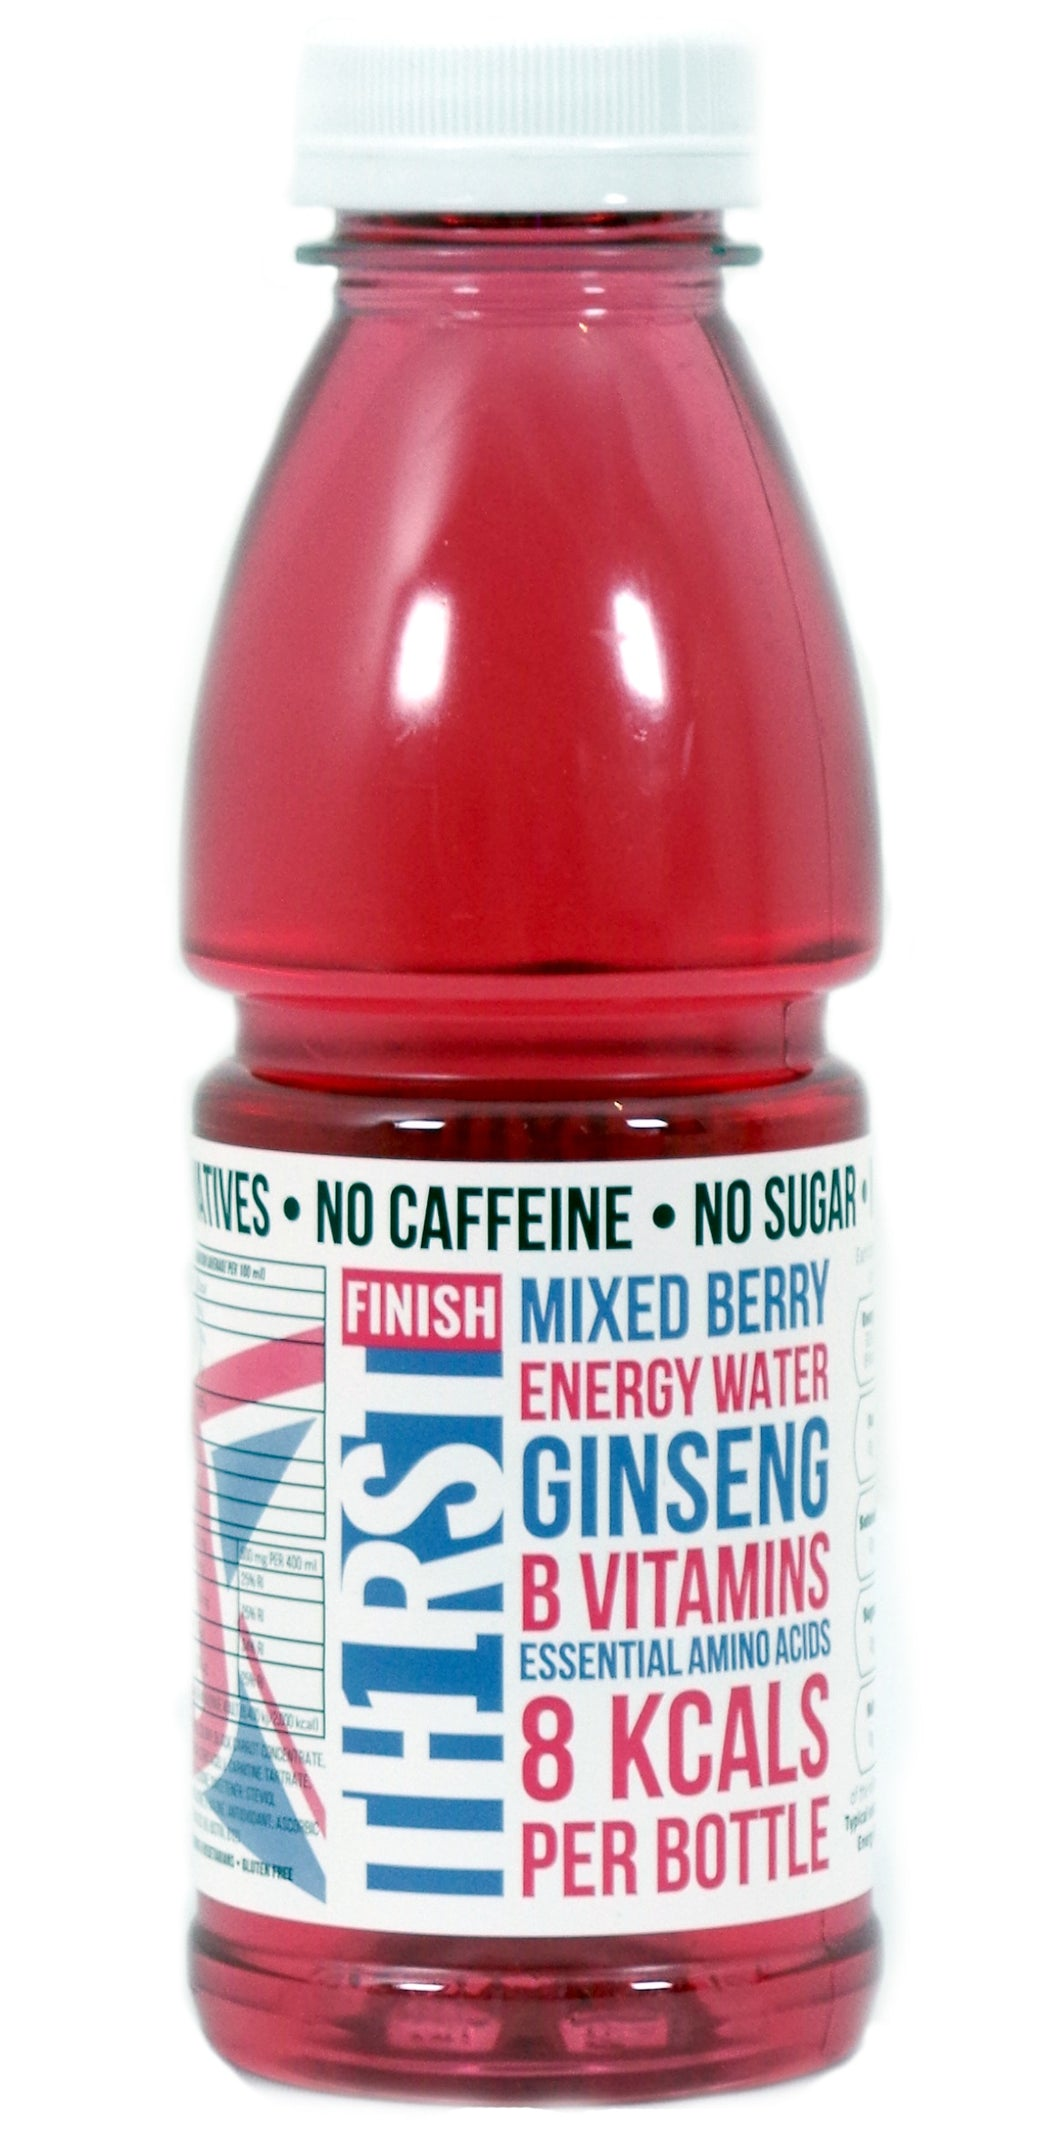 36 x TH1RST MIXED BERRY ENERGY WATER WITH GINSENG, AMINO ACIDS & VITAMINS (400ml)